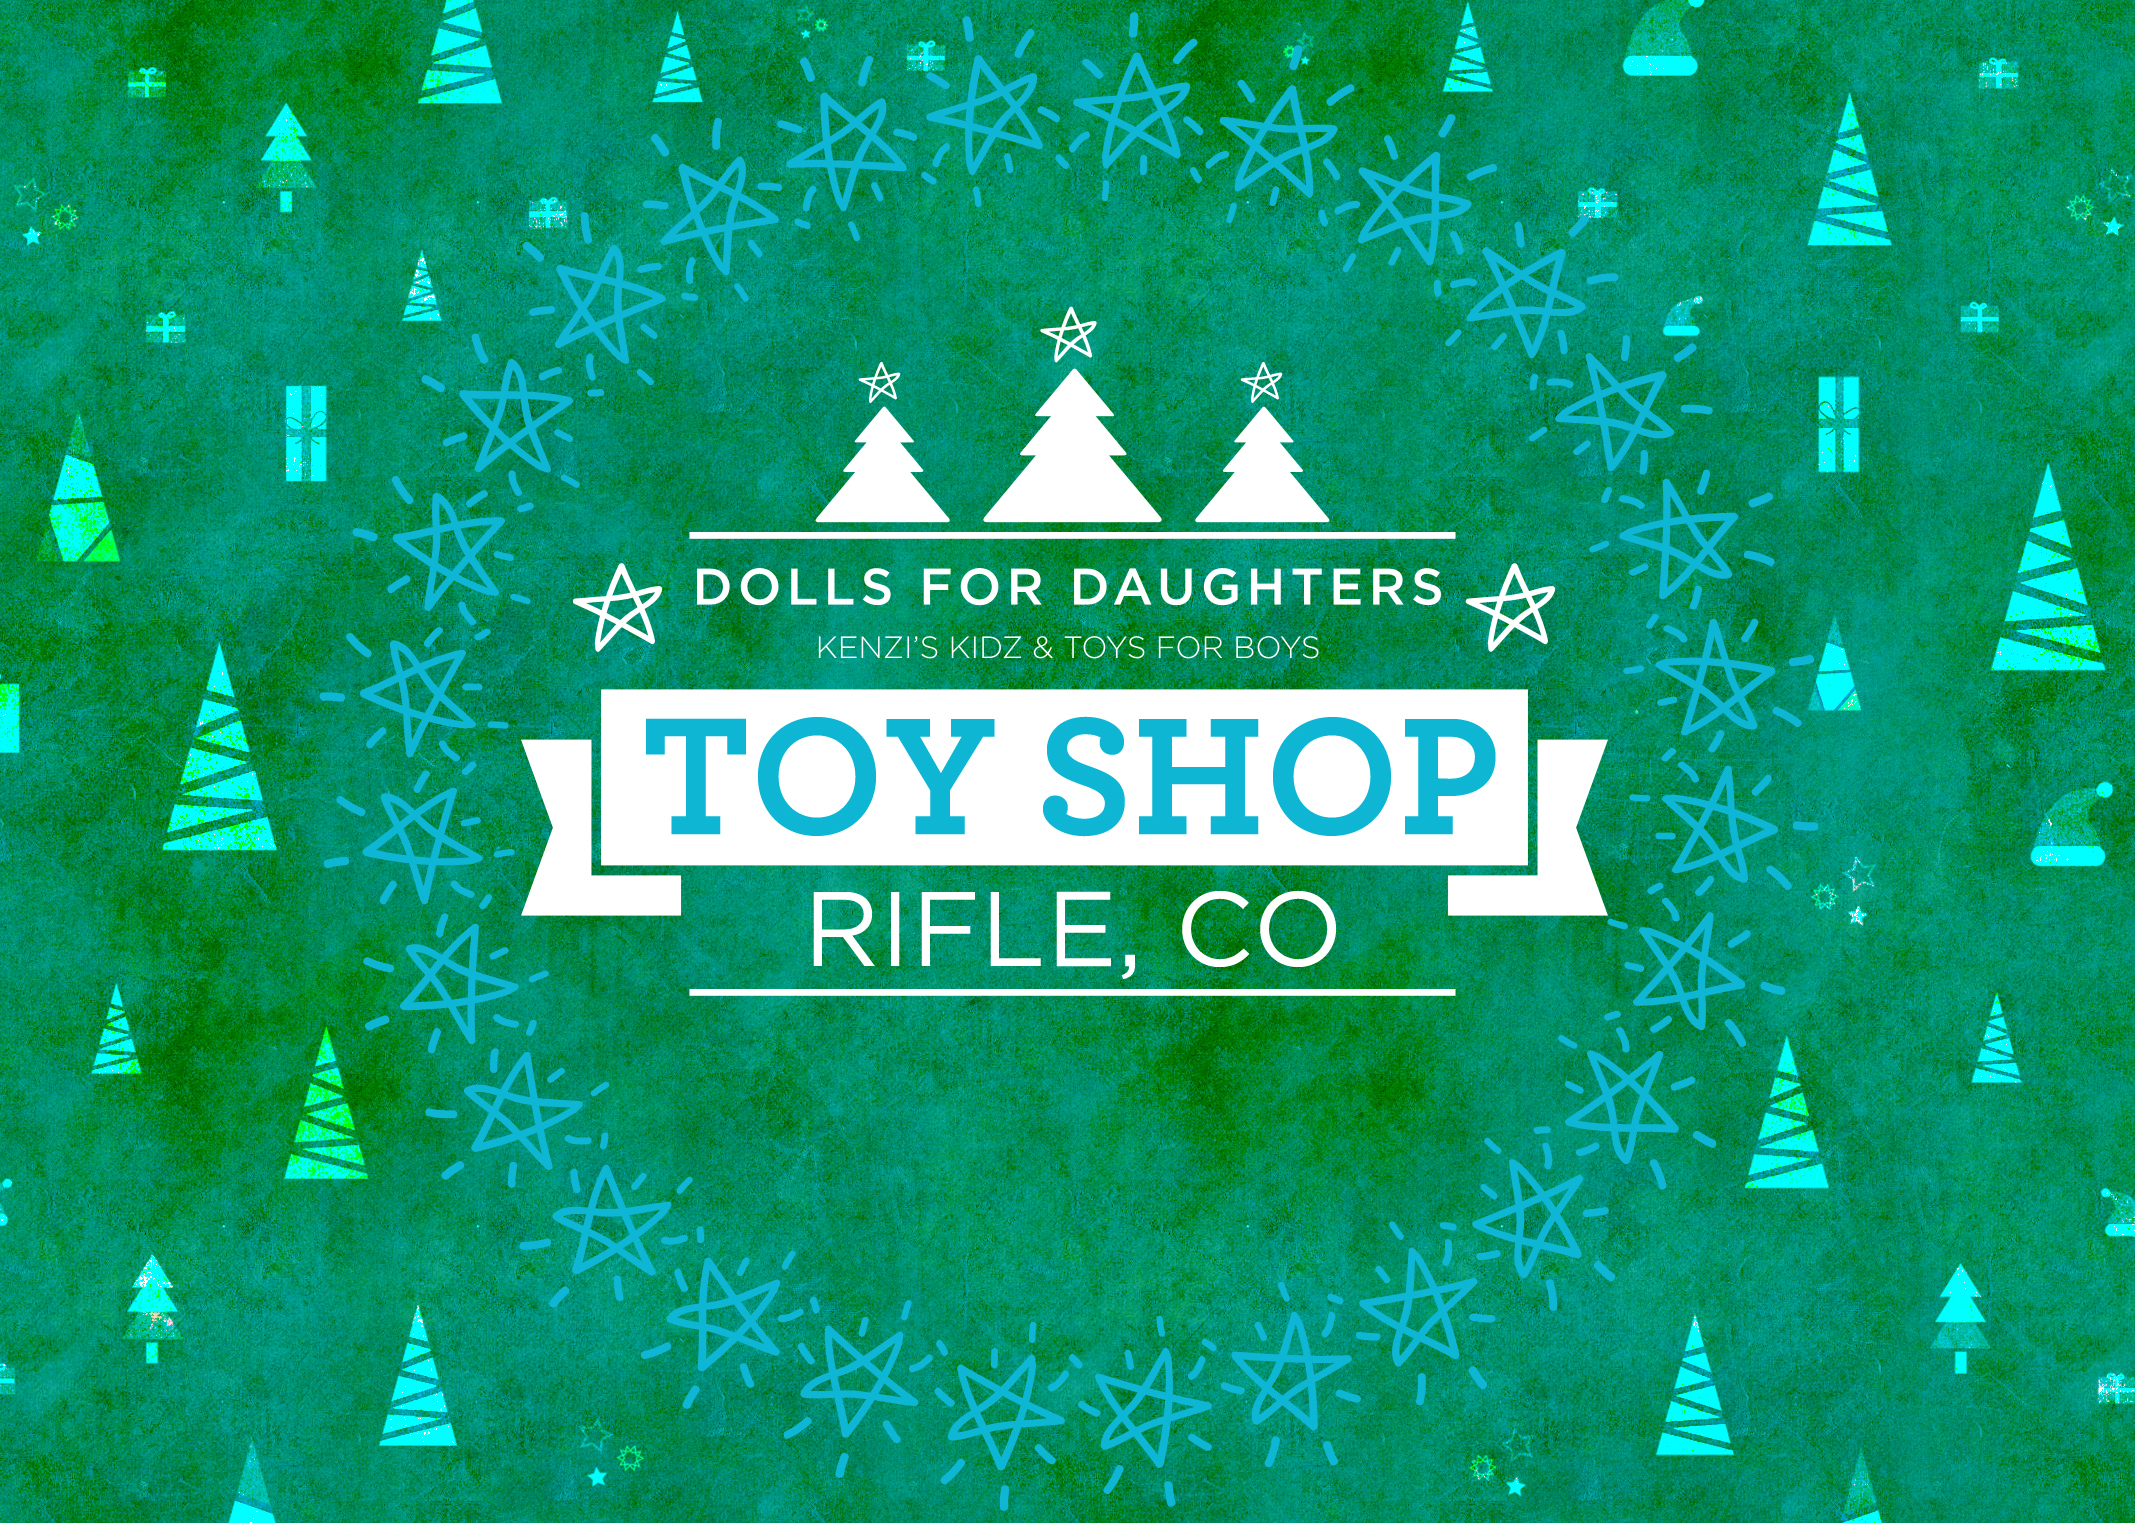 Toy Drive Rifle